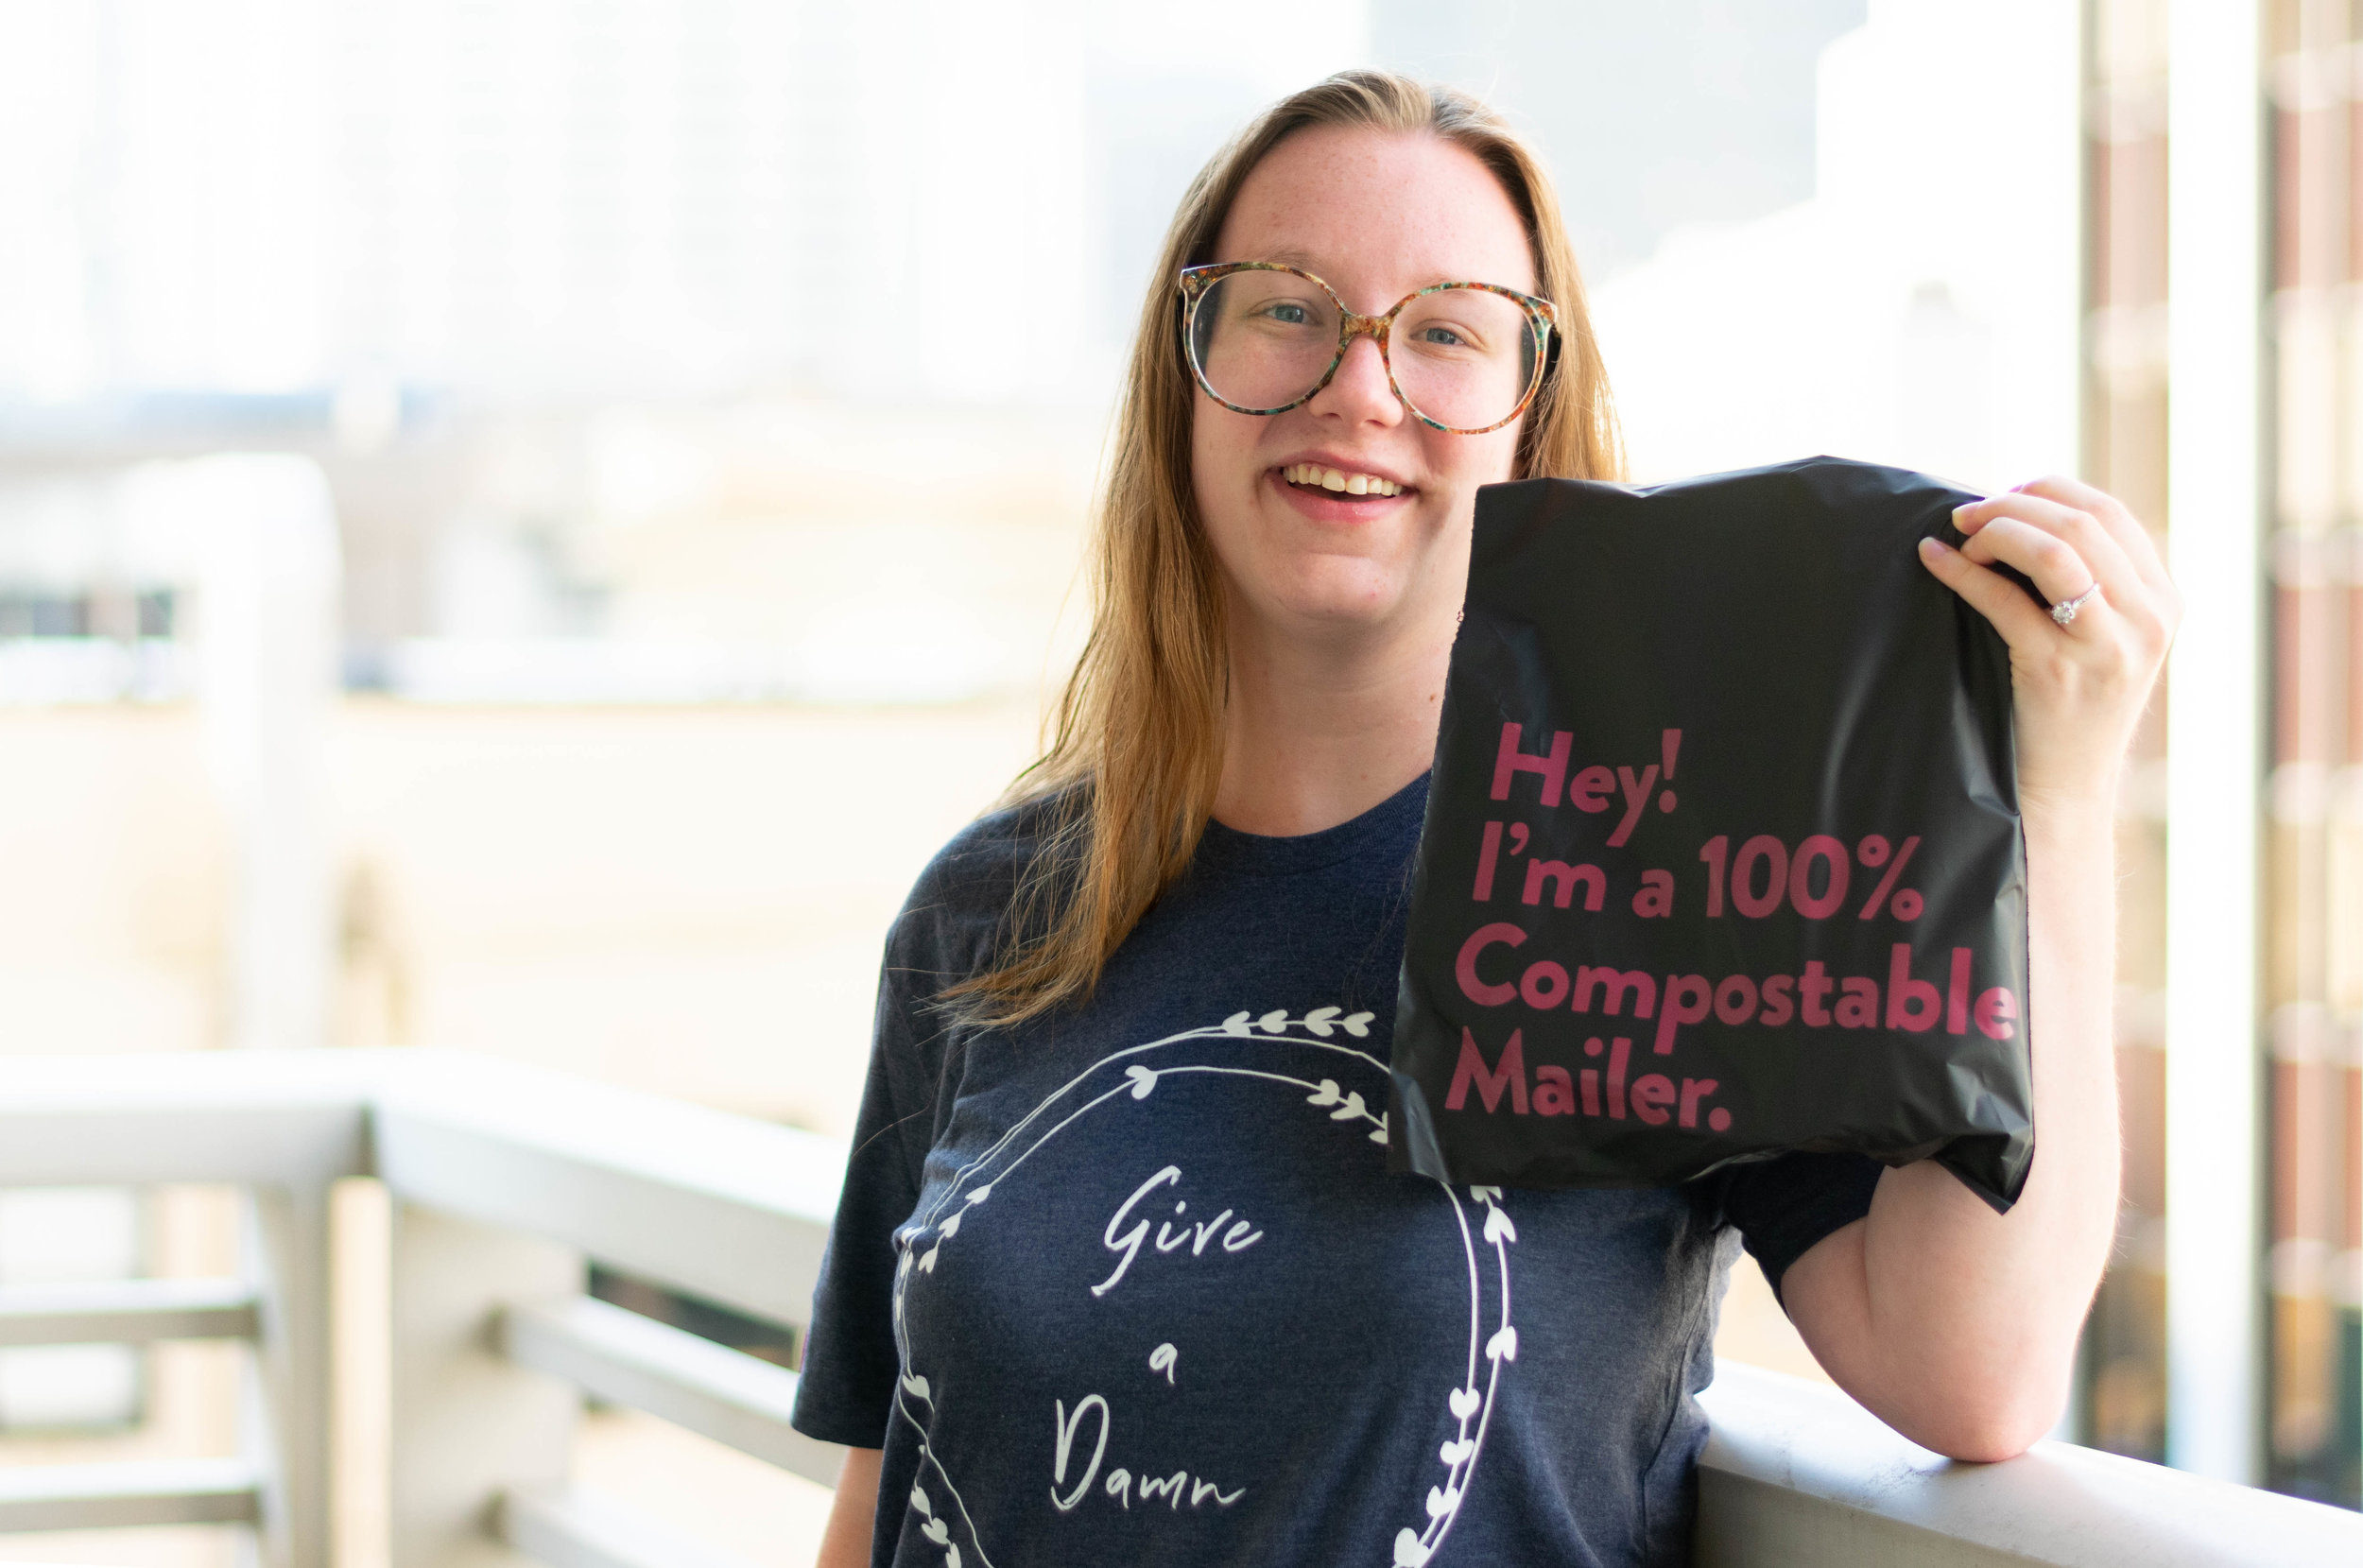 Ethically featuring  noissue compostable mailer  +  Give a Damn tee from Give a Damn Goods  + glasses from  Retrospecced